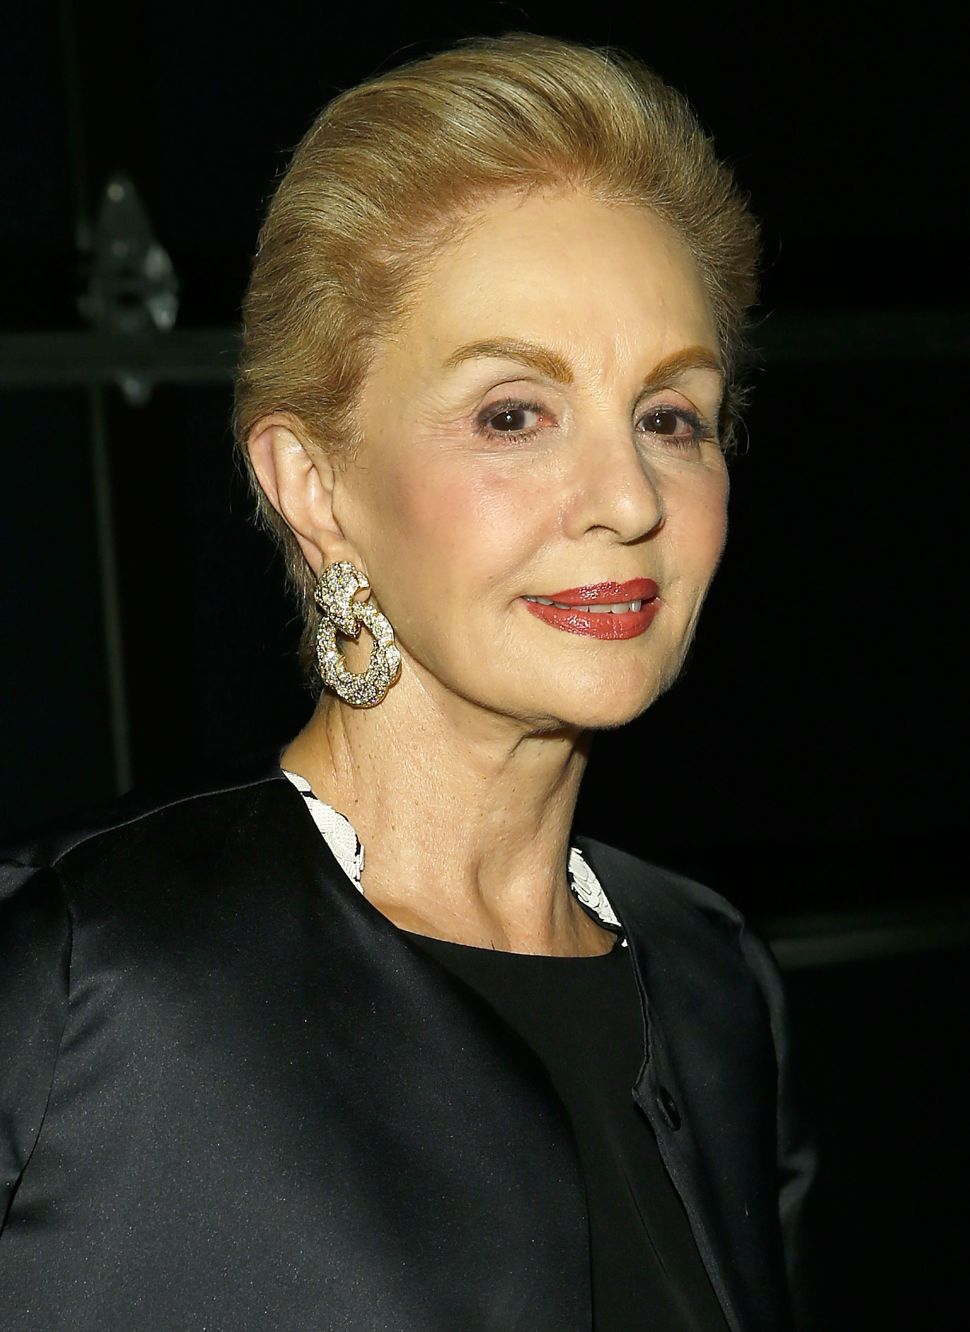 Carolina Herrera Finds New Yorkers' Style 'Horrendous'